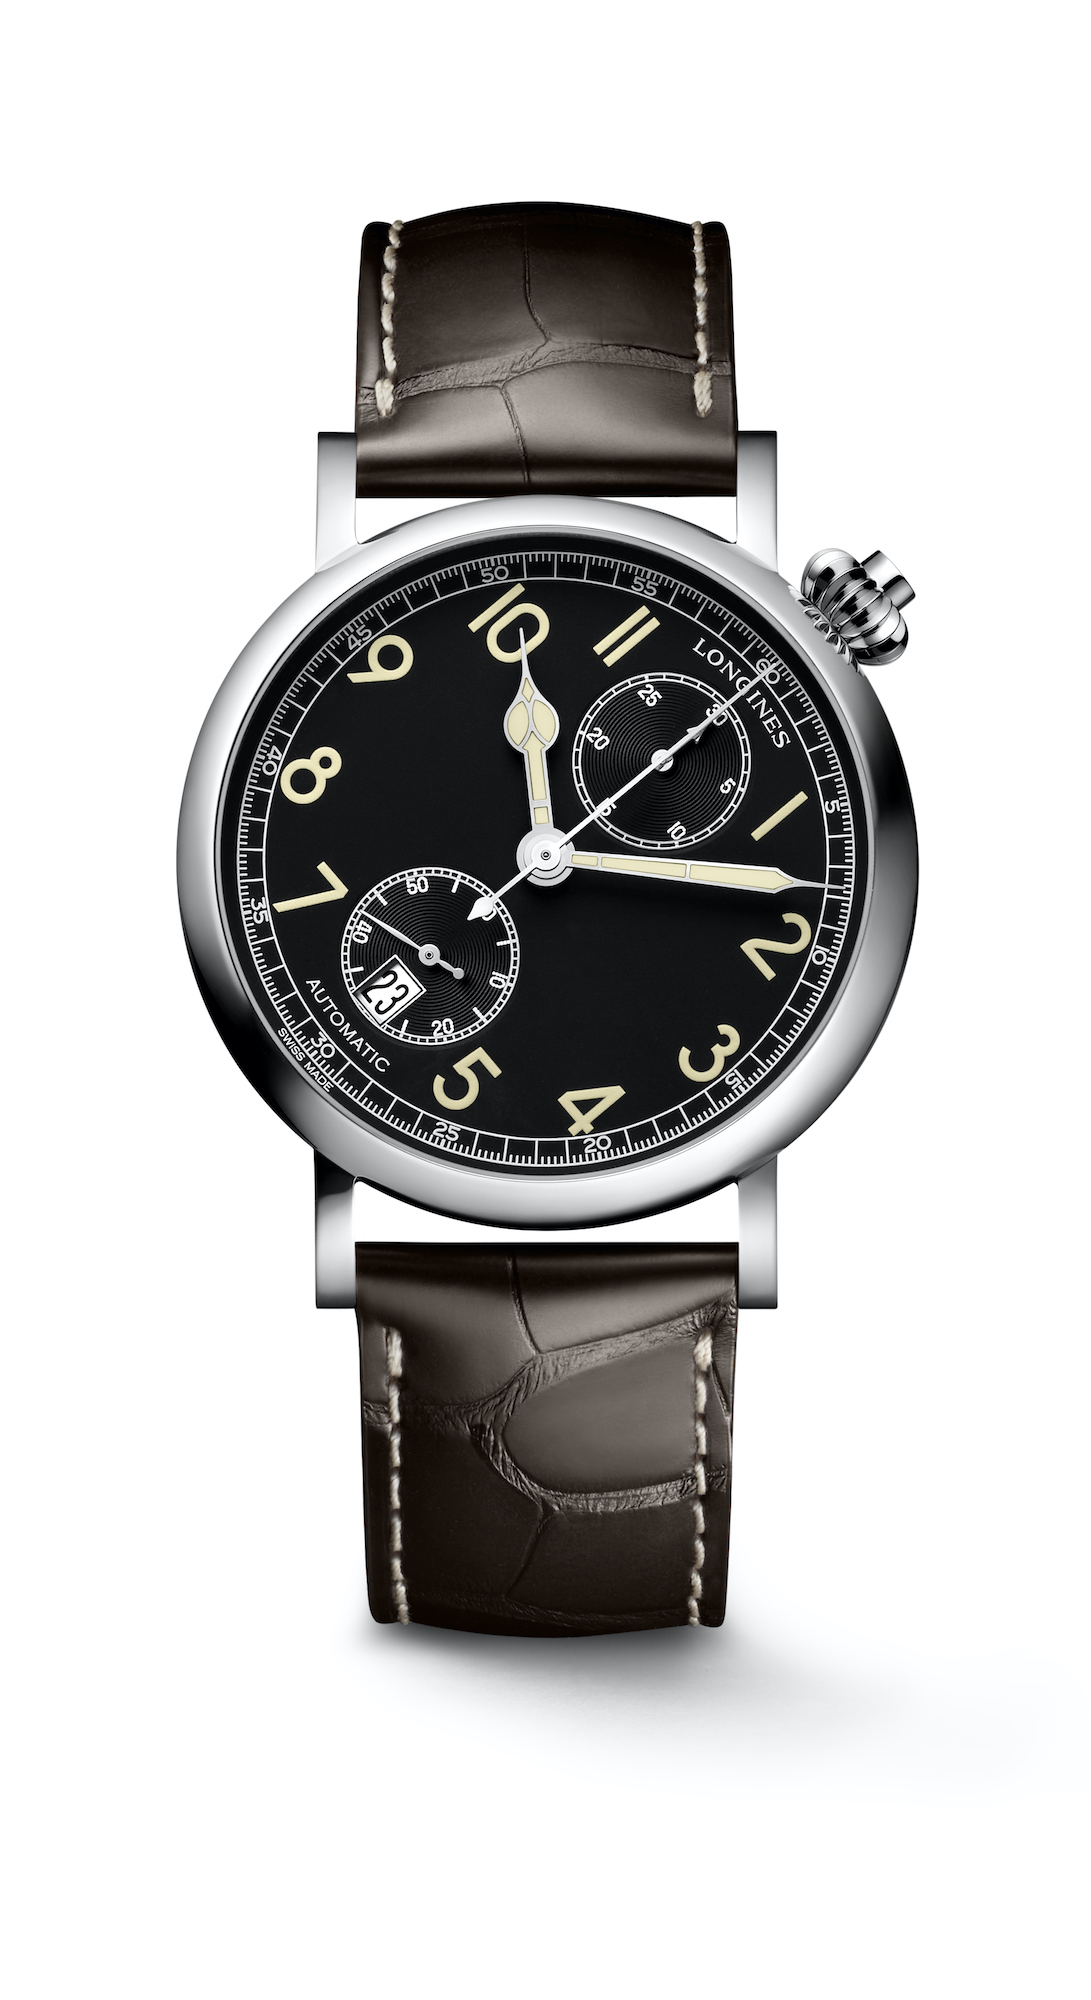 The Longines Avigation Watch A-7 1935 frontal